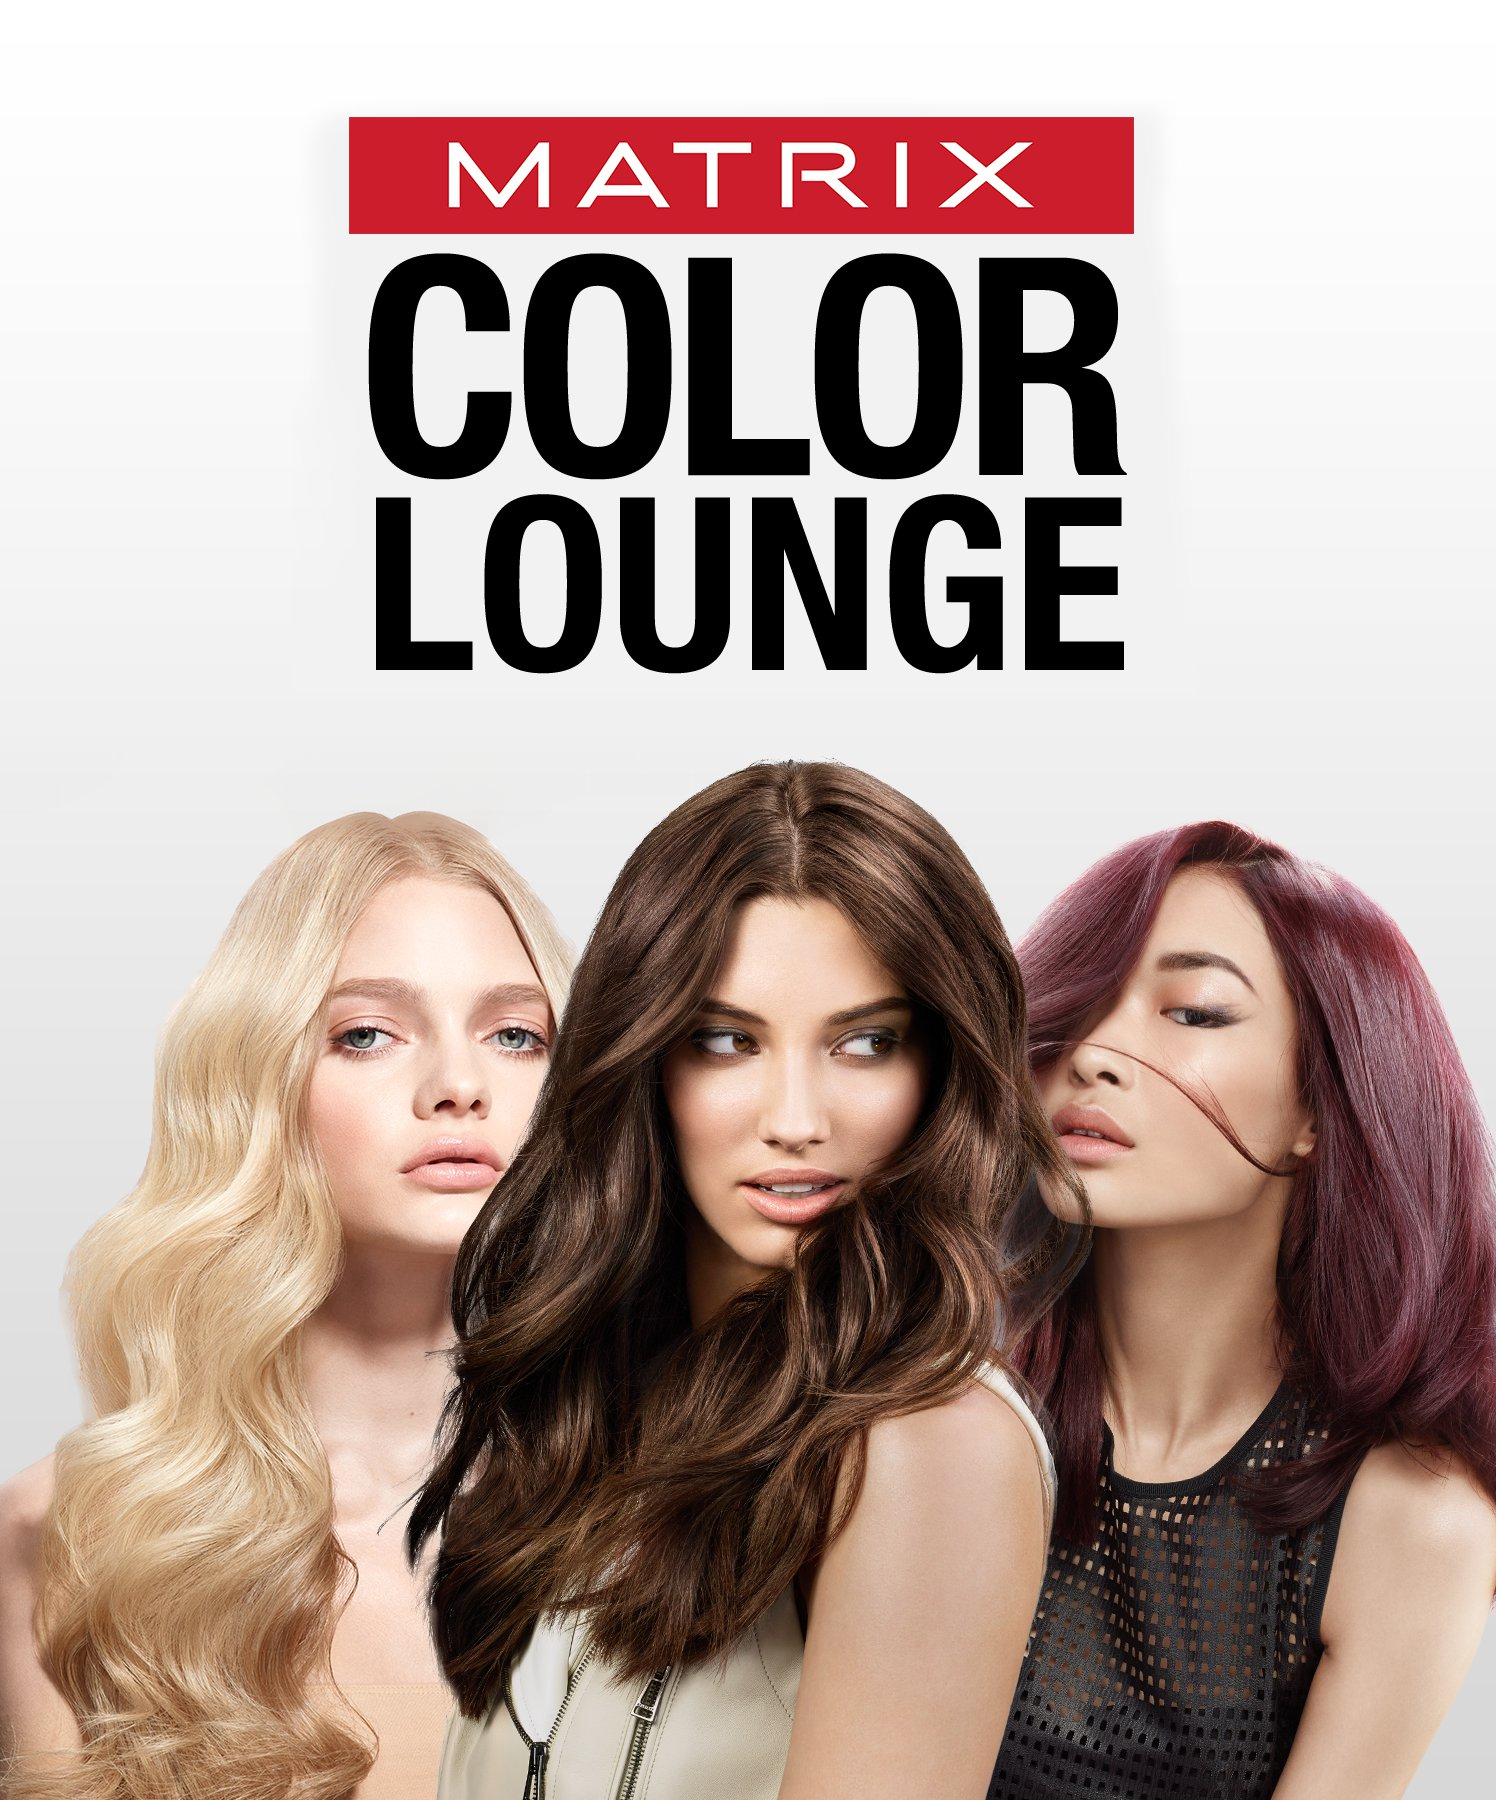 Try Out The Color Lounge | Matrix